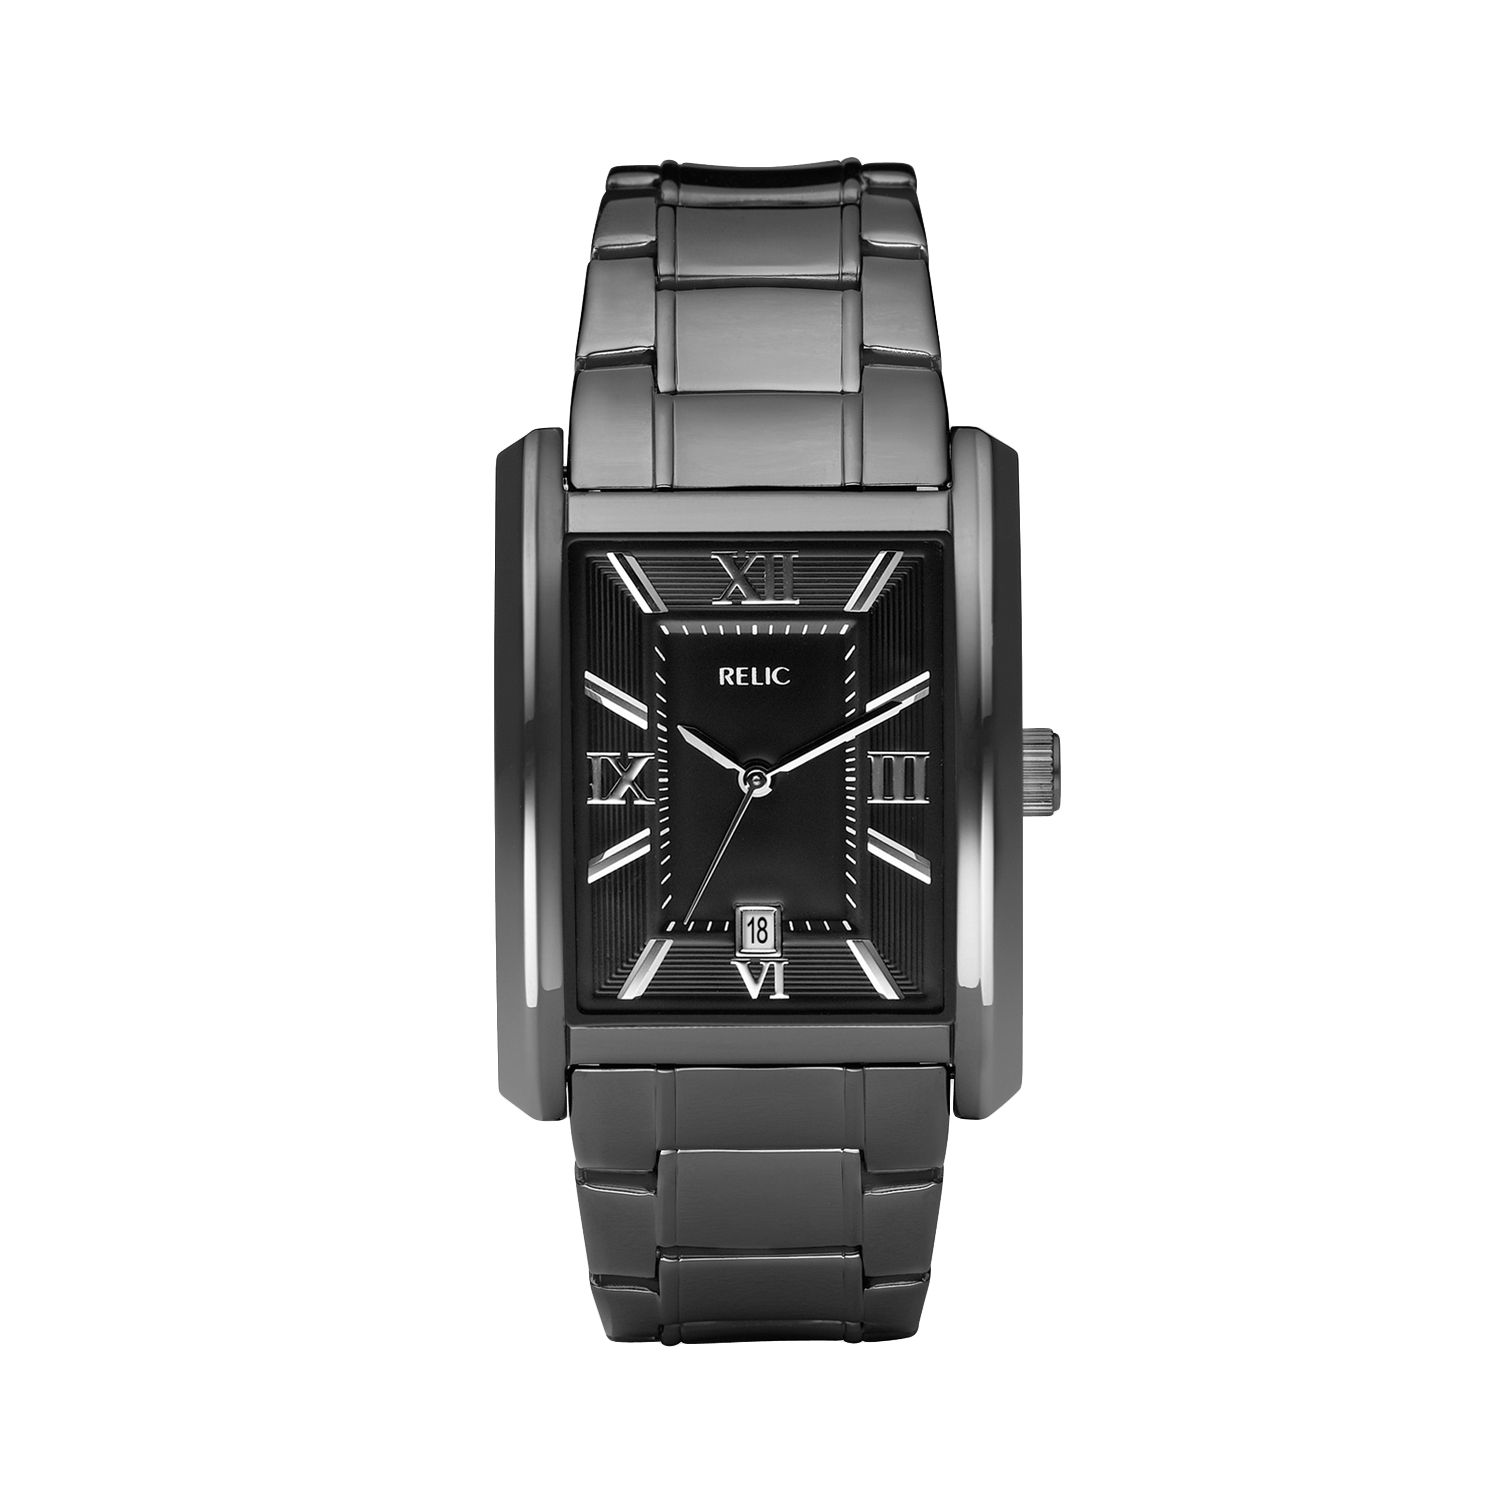 Relic Mens Silver Tone Watch Kohl'